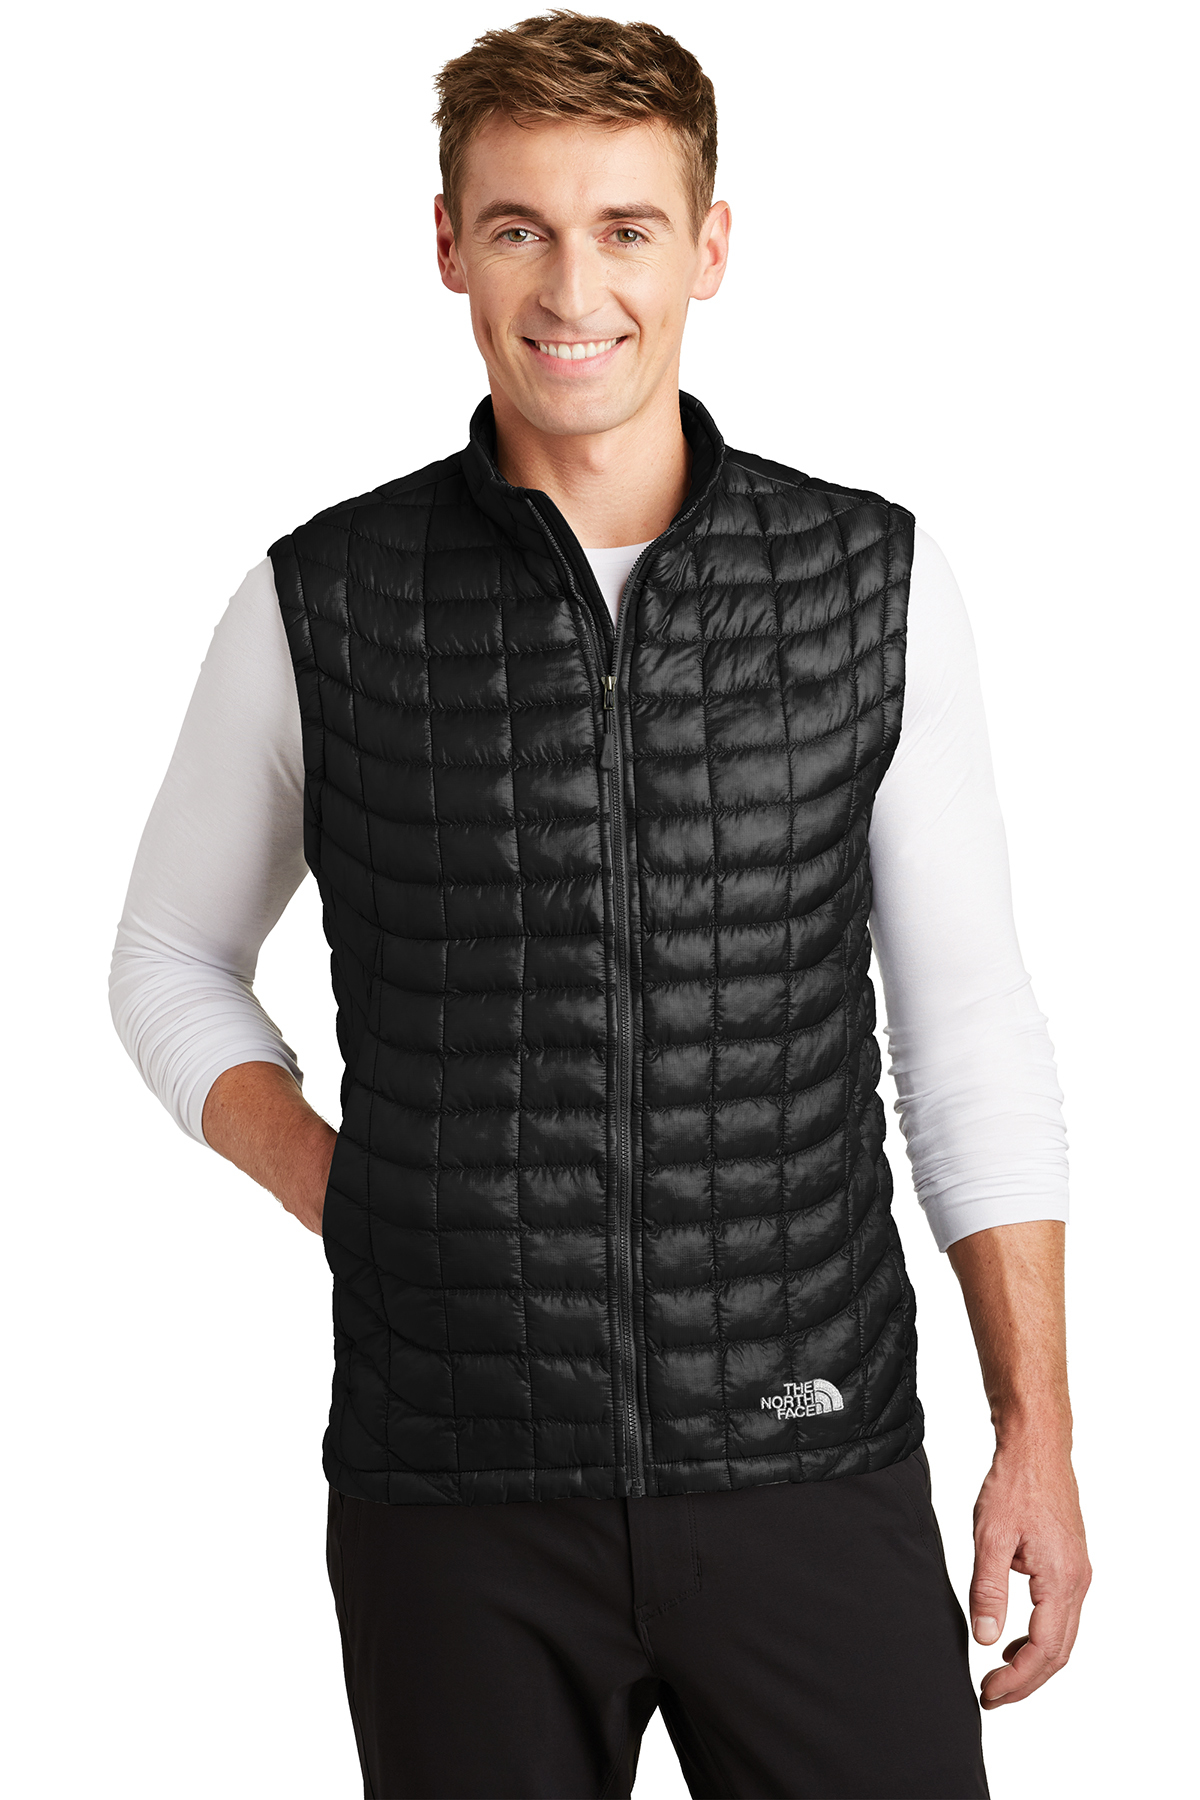 fcb01fef14f9 The North Face® NF0A3LHD - Men s ThermoBall™ Trekker Vest  147.51 ...